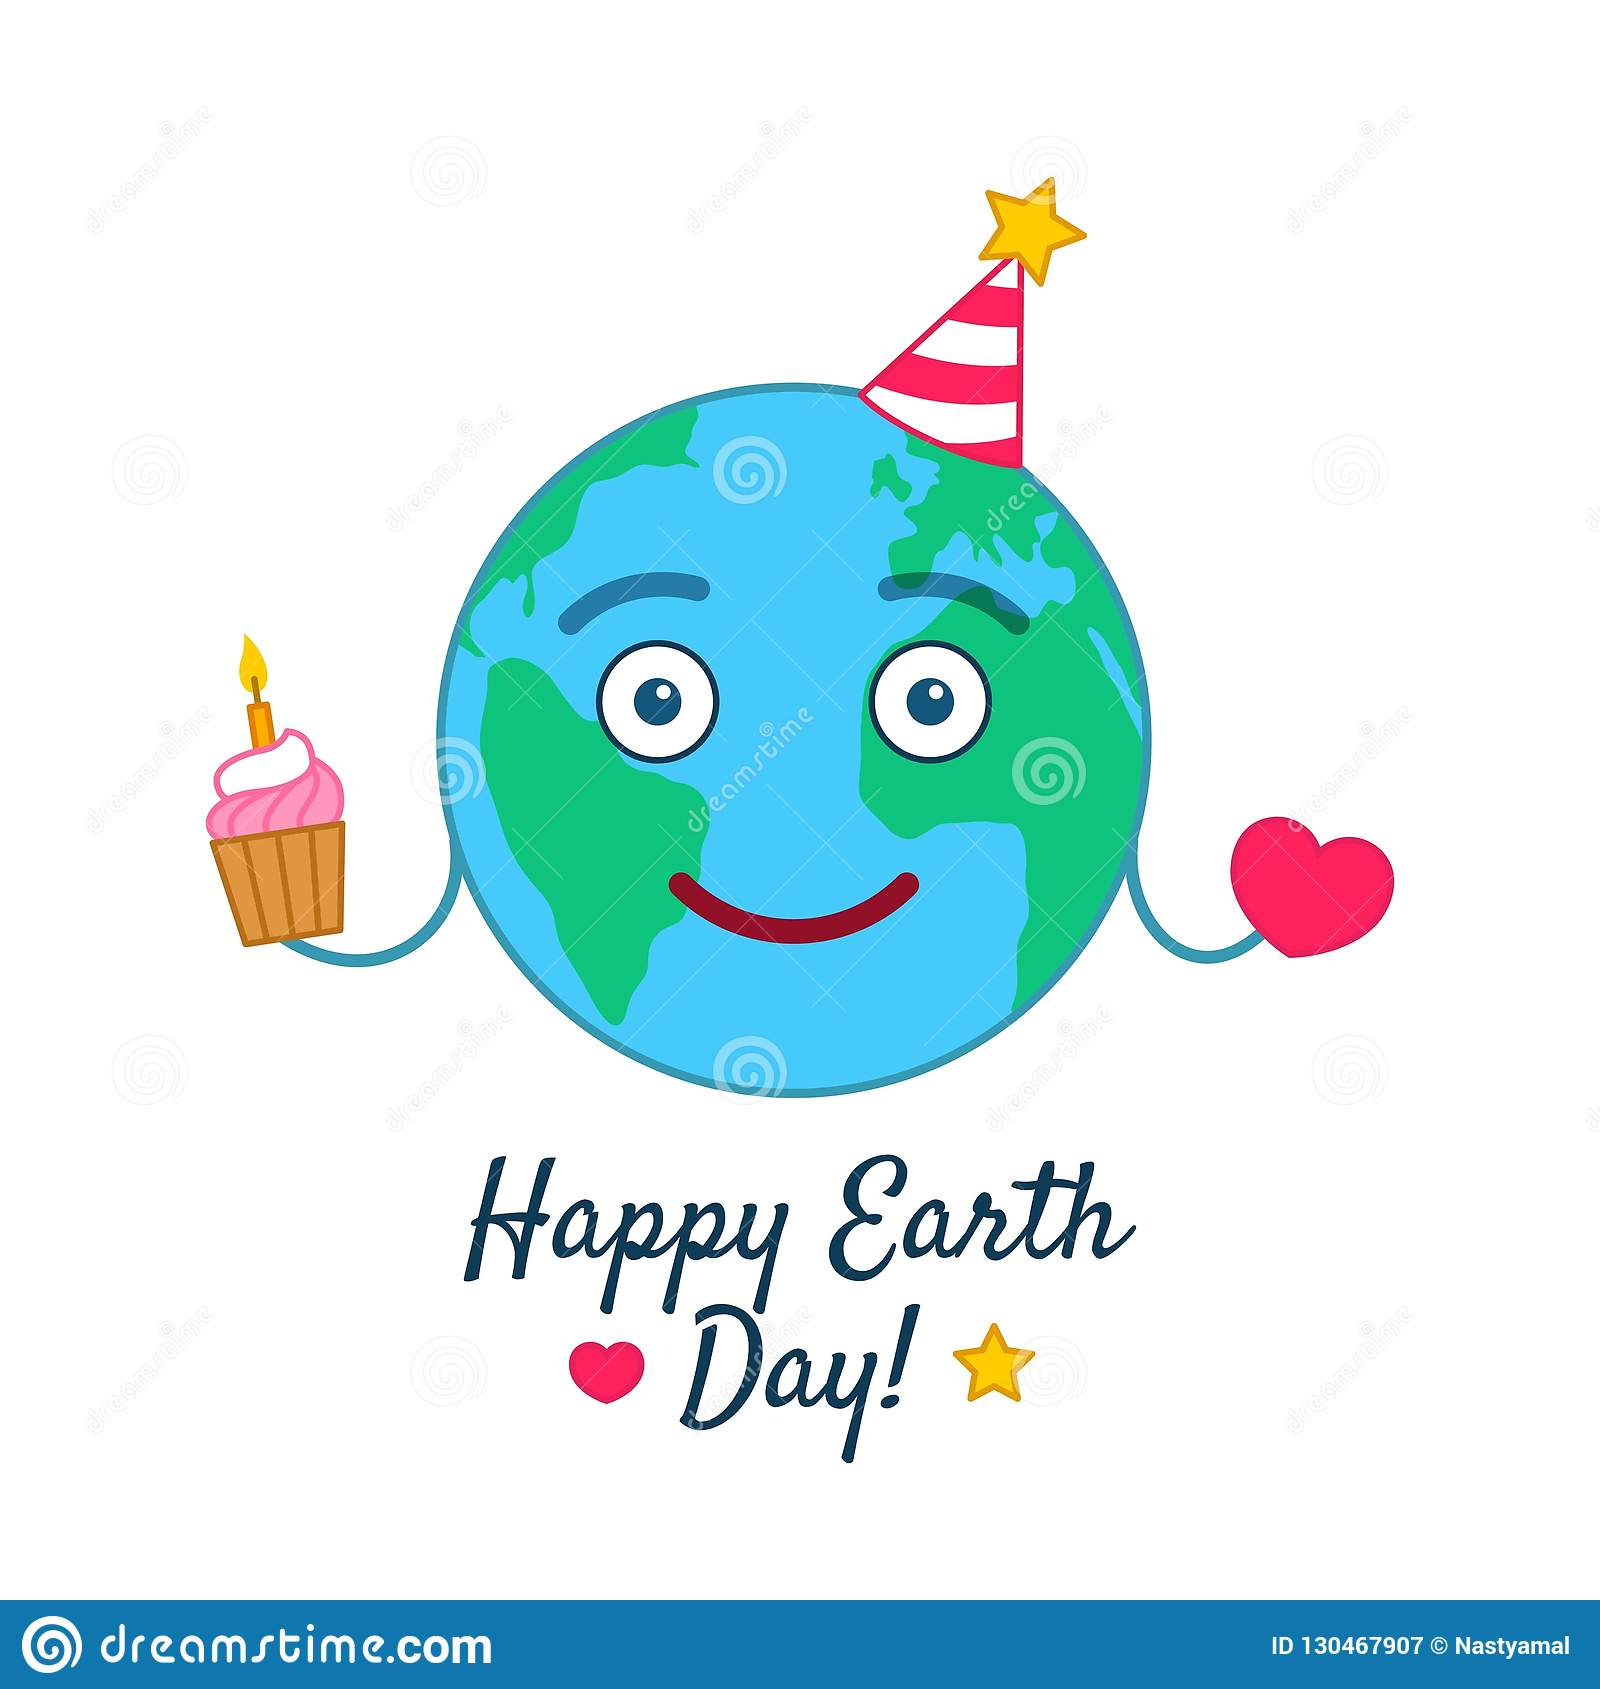 Happy Earth Day Greeting Card With Funny Emoticon Planet In Party Hat Holding Birthday Cake And Red Heart Emoji Vector Illustration